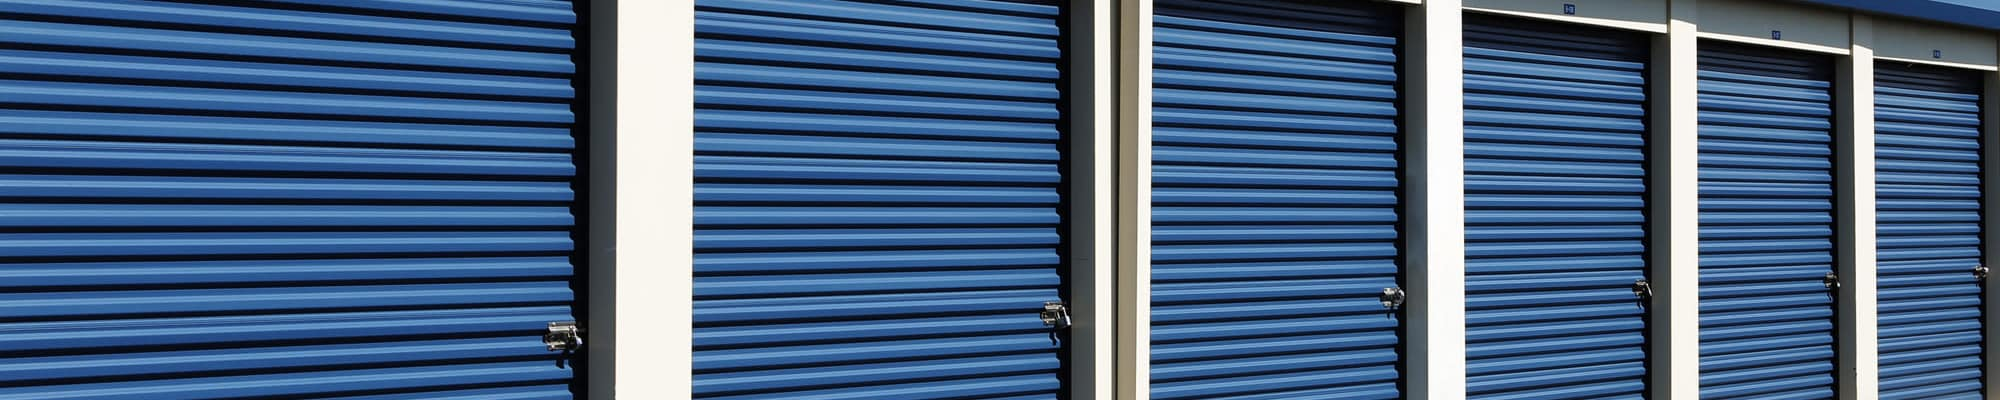 Self storage features in Greenville, South Carolina